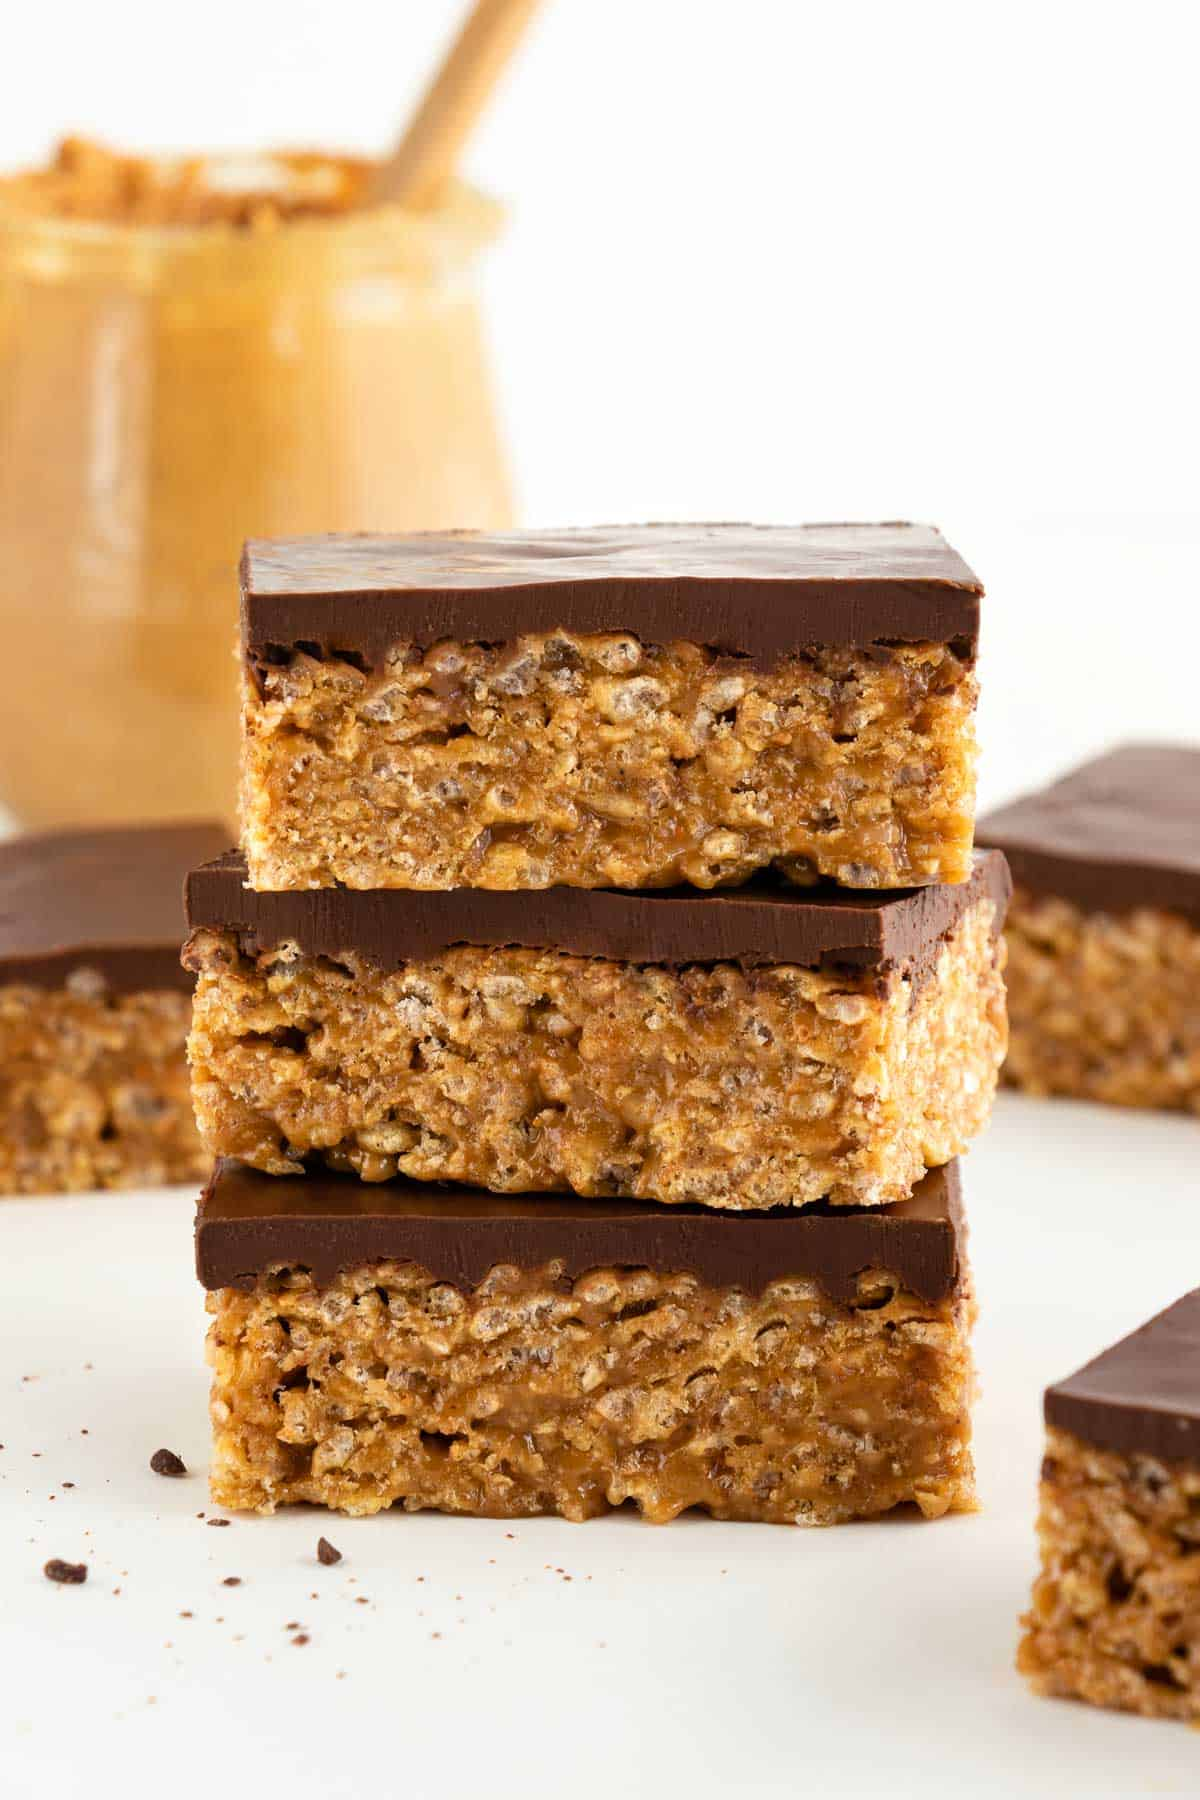 three vegan scotcheroos stacked on top of each other, surrounded by more vegan special k bars and a jar of peanut butter